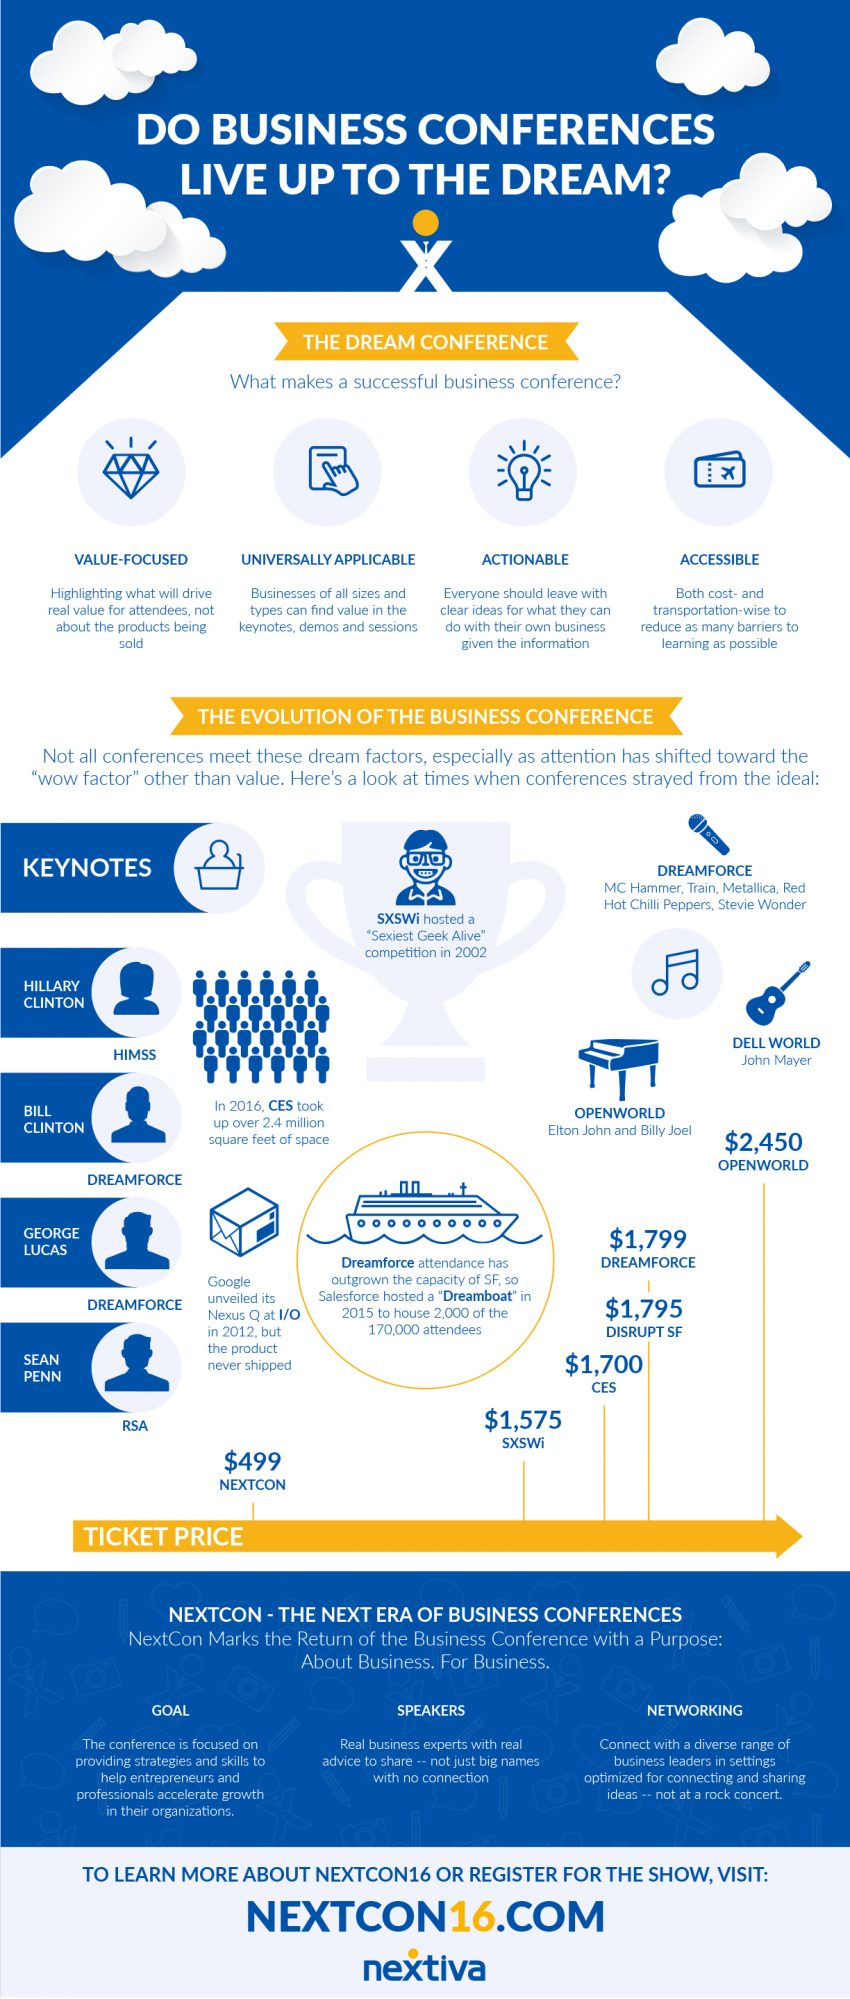 What Makes a Successful Business Conference? (Infographic)